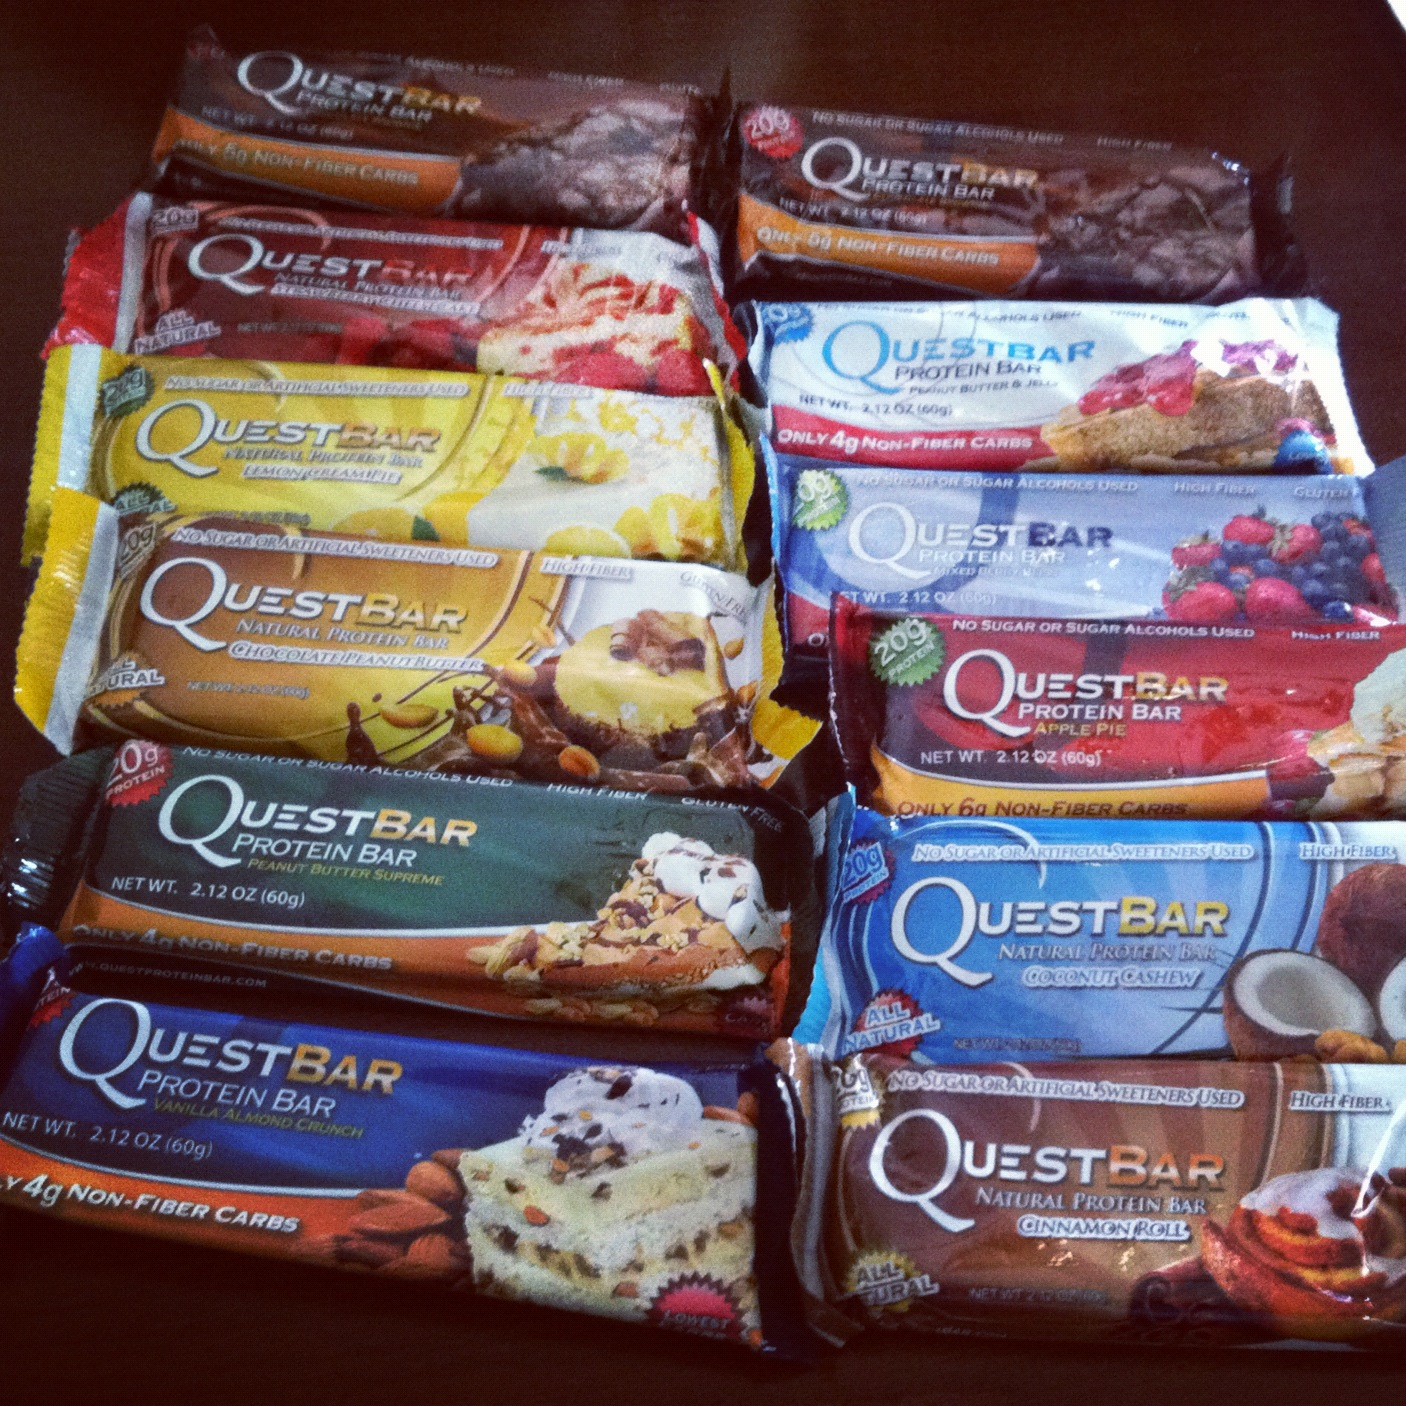 What Quest Bar Flavor Are You?